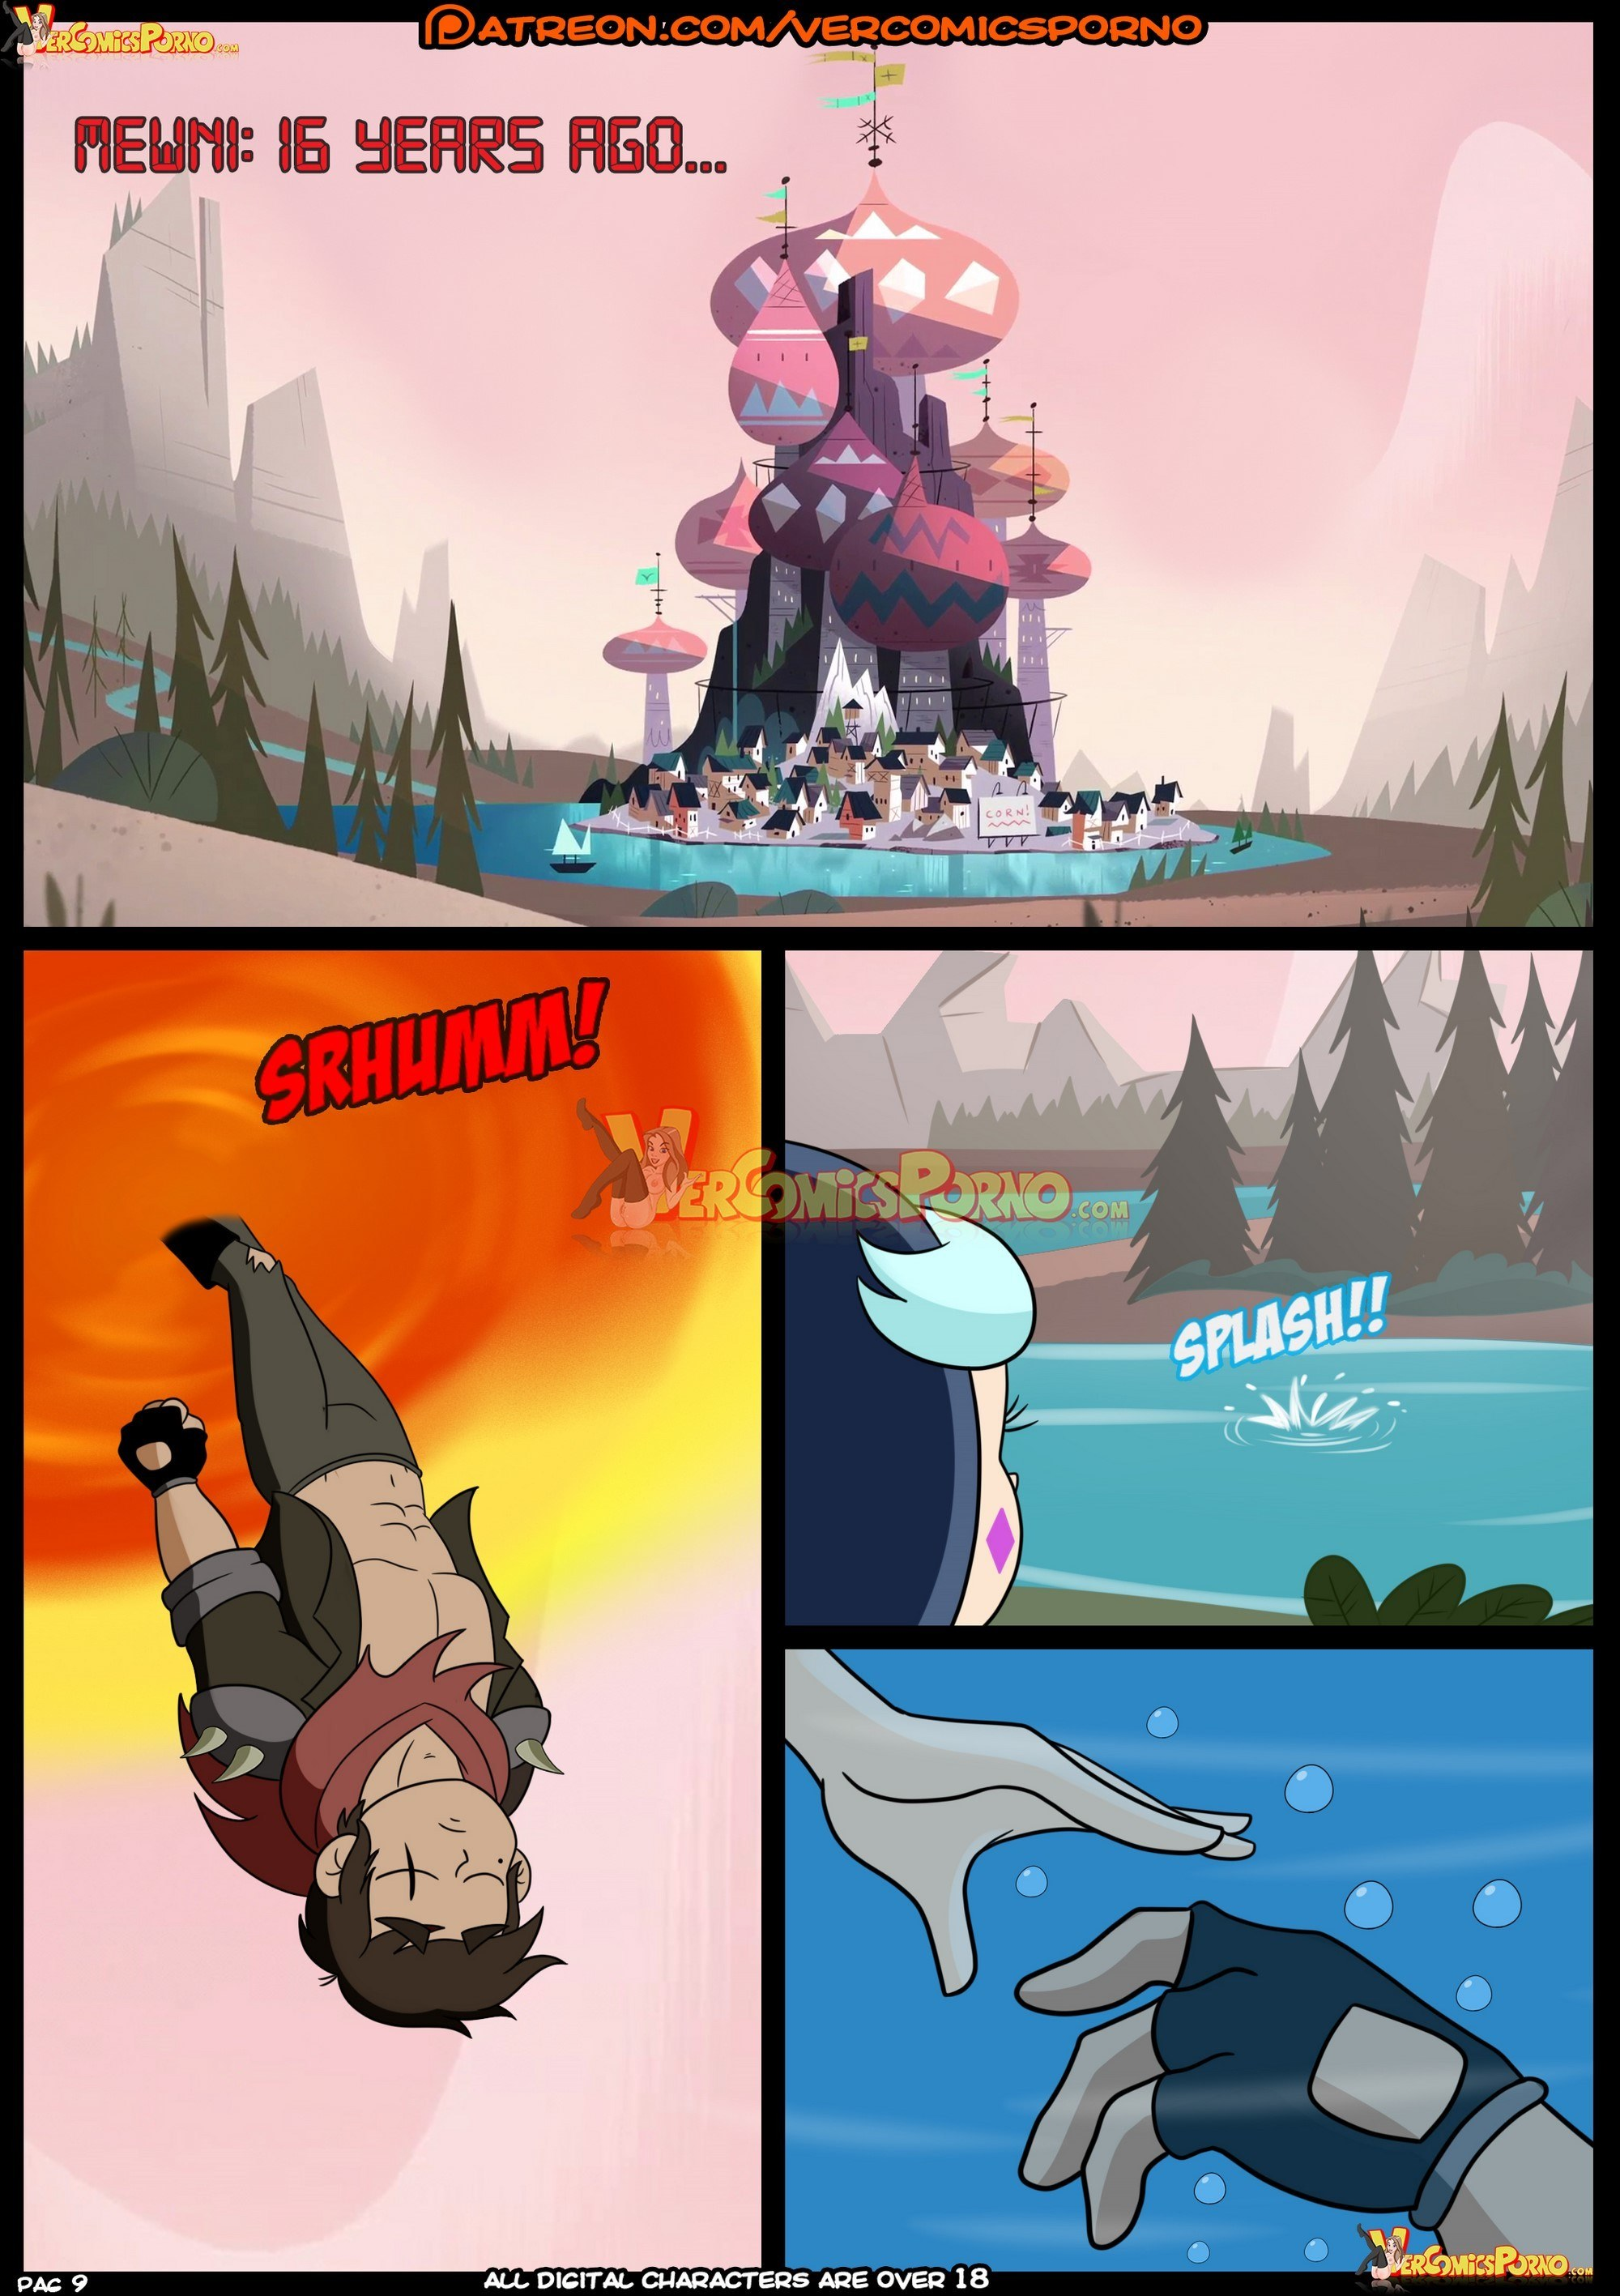 Marco vs the forces of time- Croc